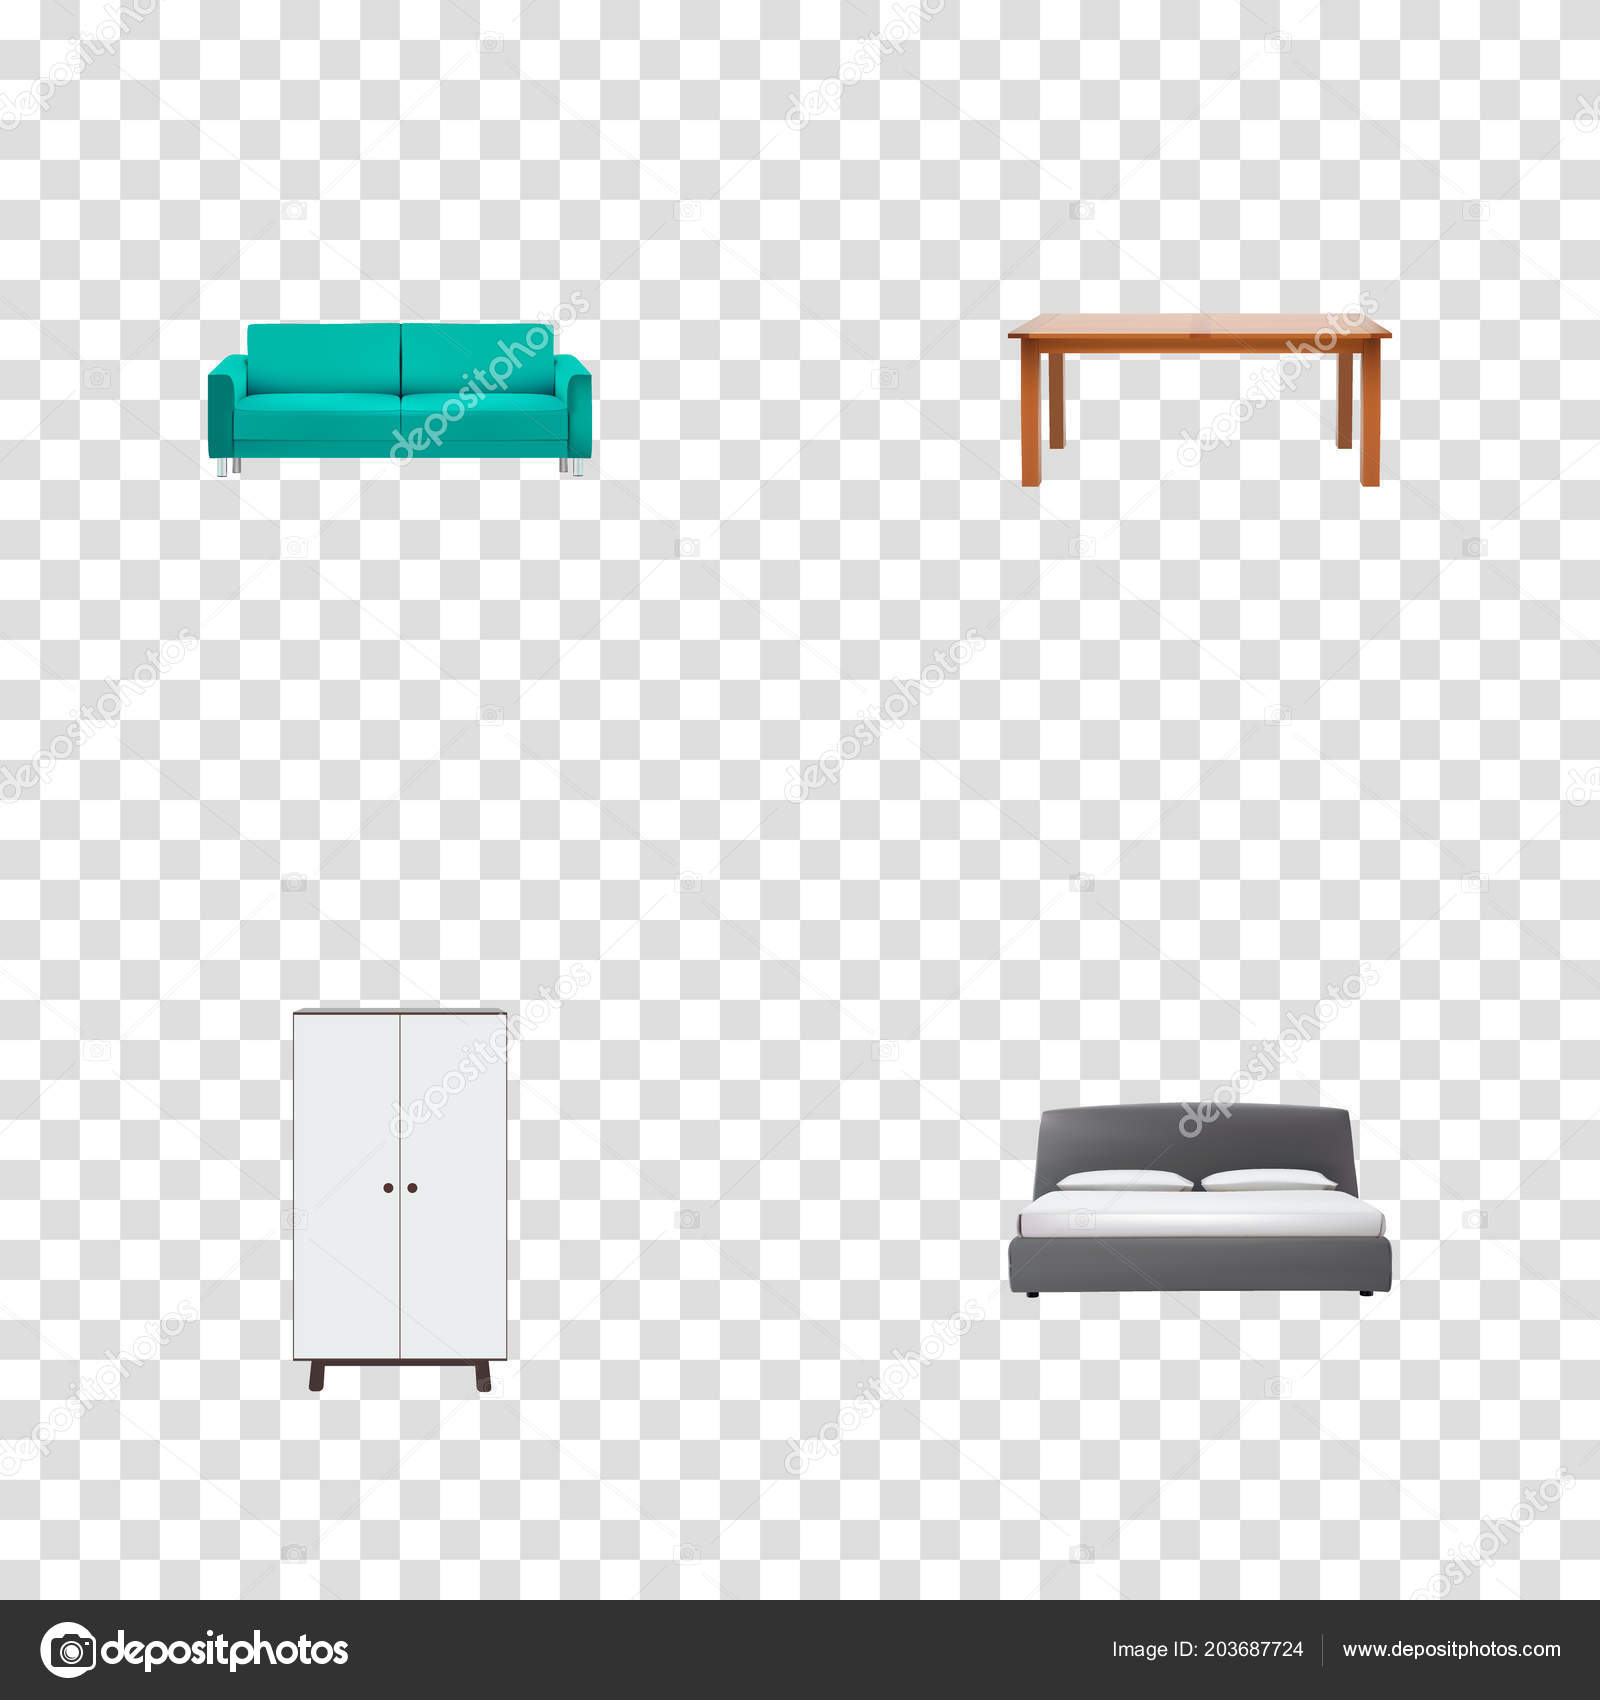 Set Of Furniture Realistic Symbols With Furniture Double Bed Couch